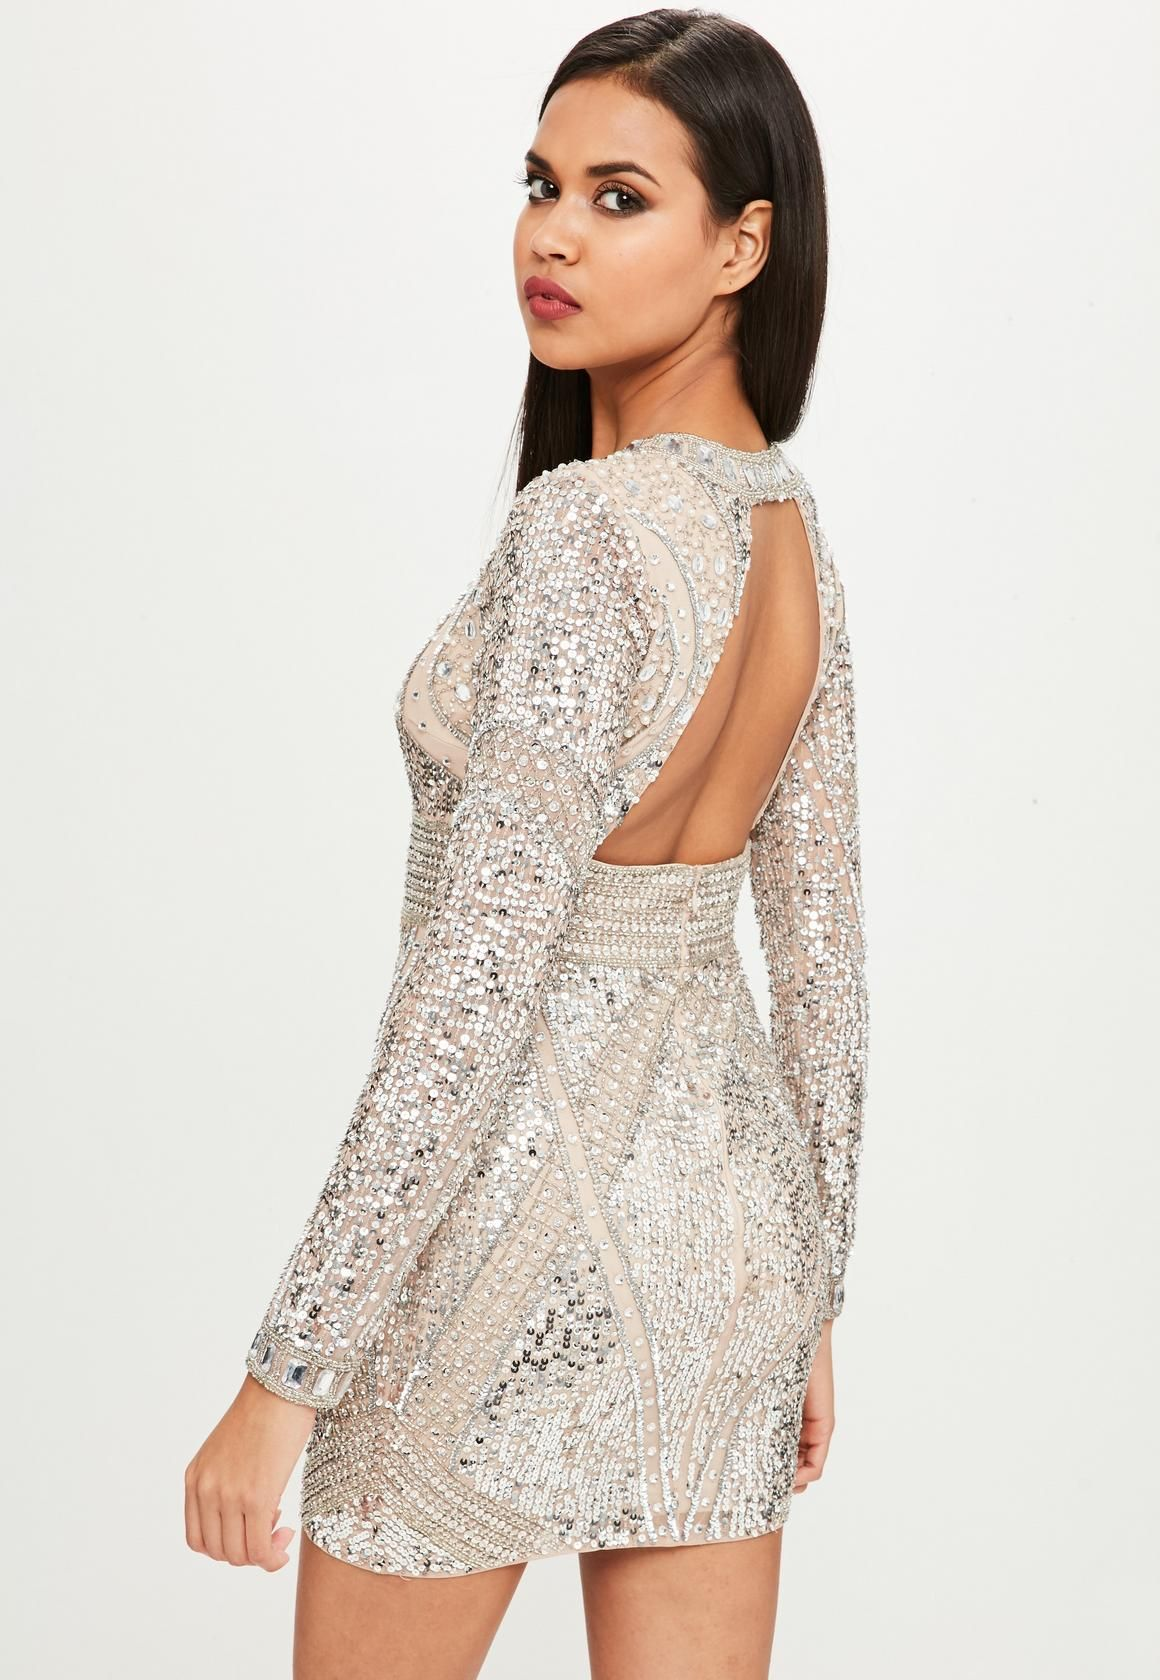 11e3597466c1 Missguided - Carli Bybel x Missguided Nude Embellished Mini Dress